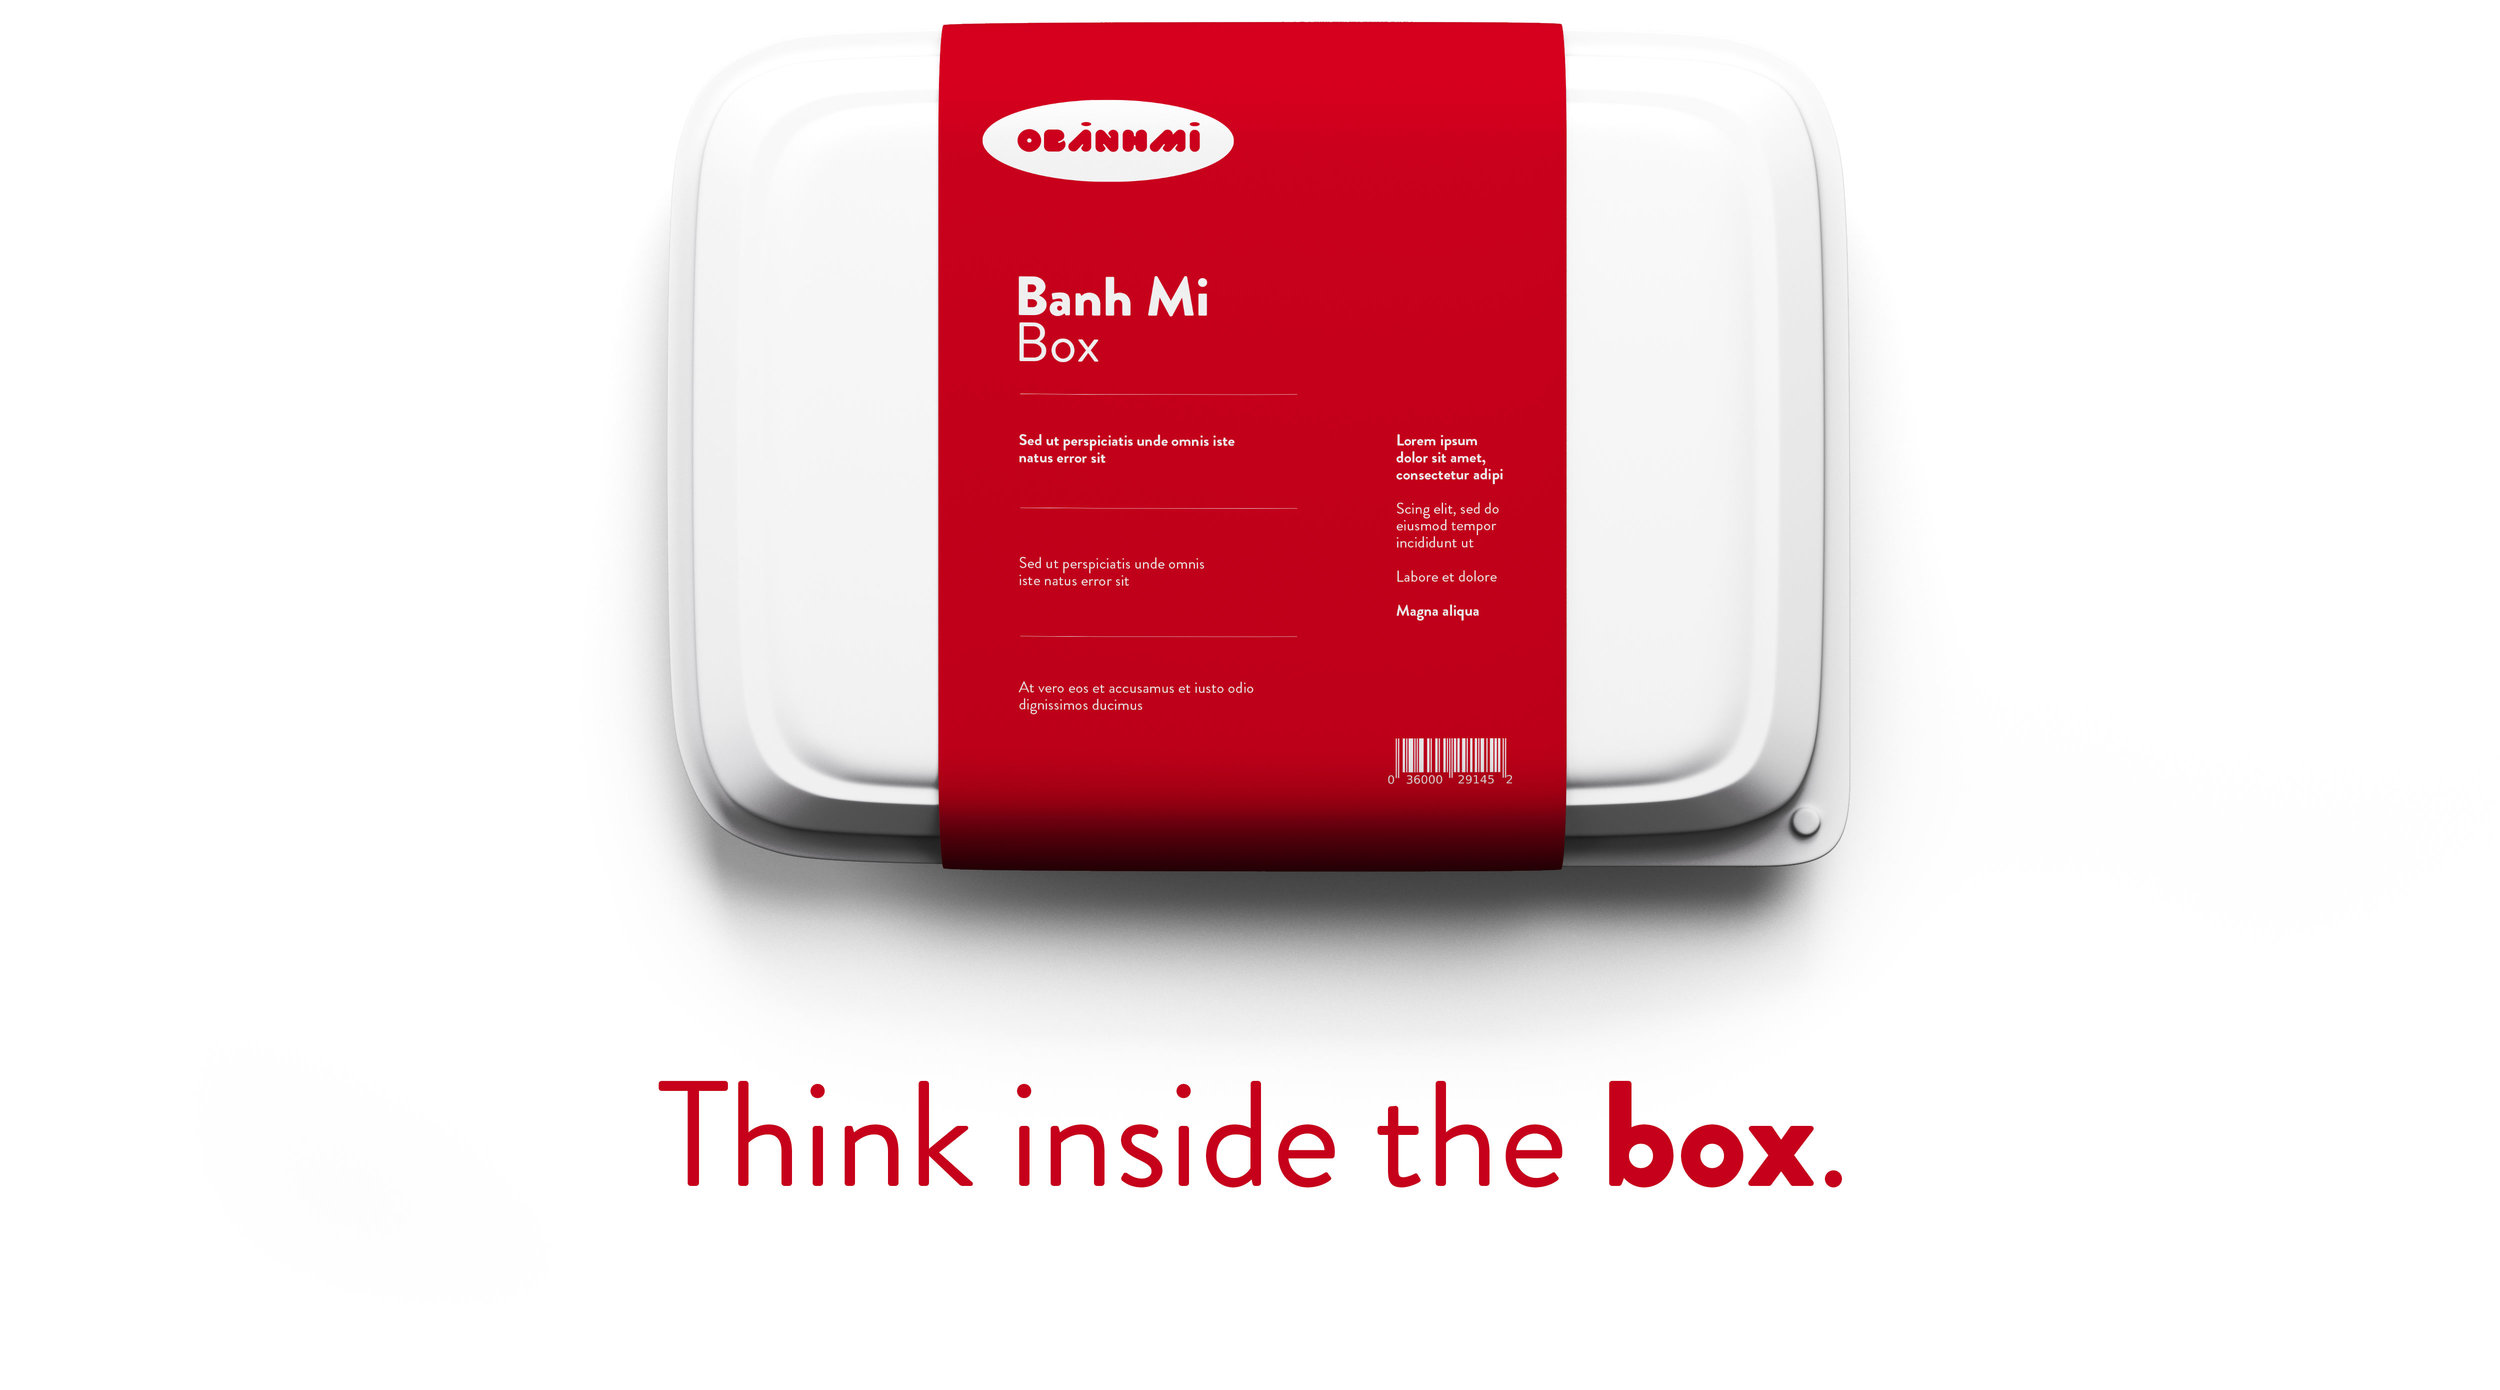 It's ok to think inside of the box.